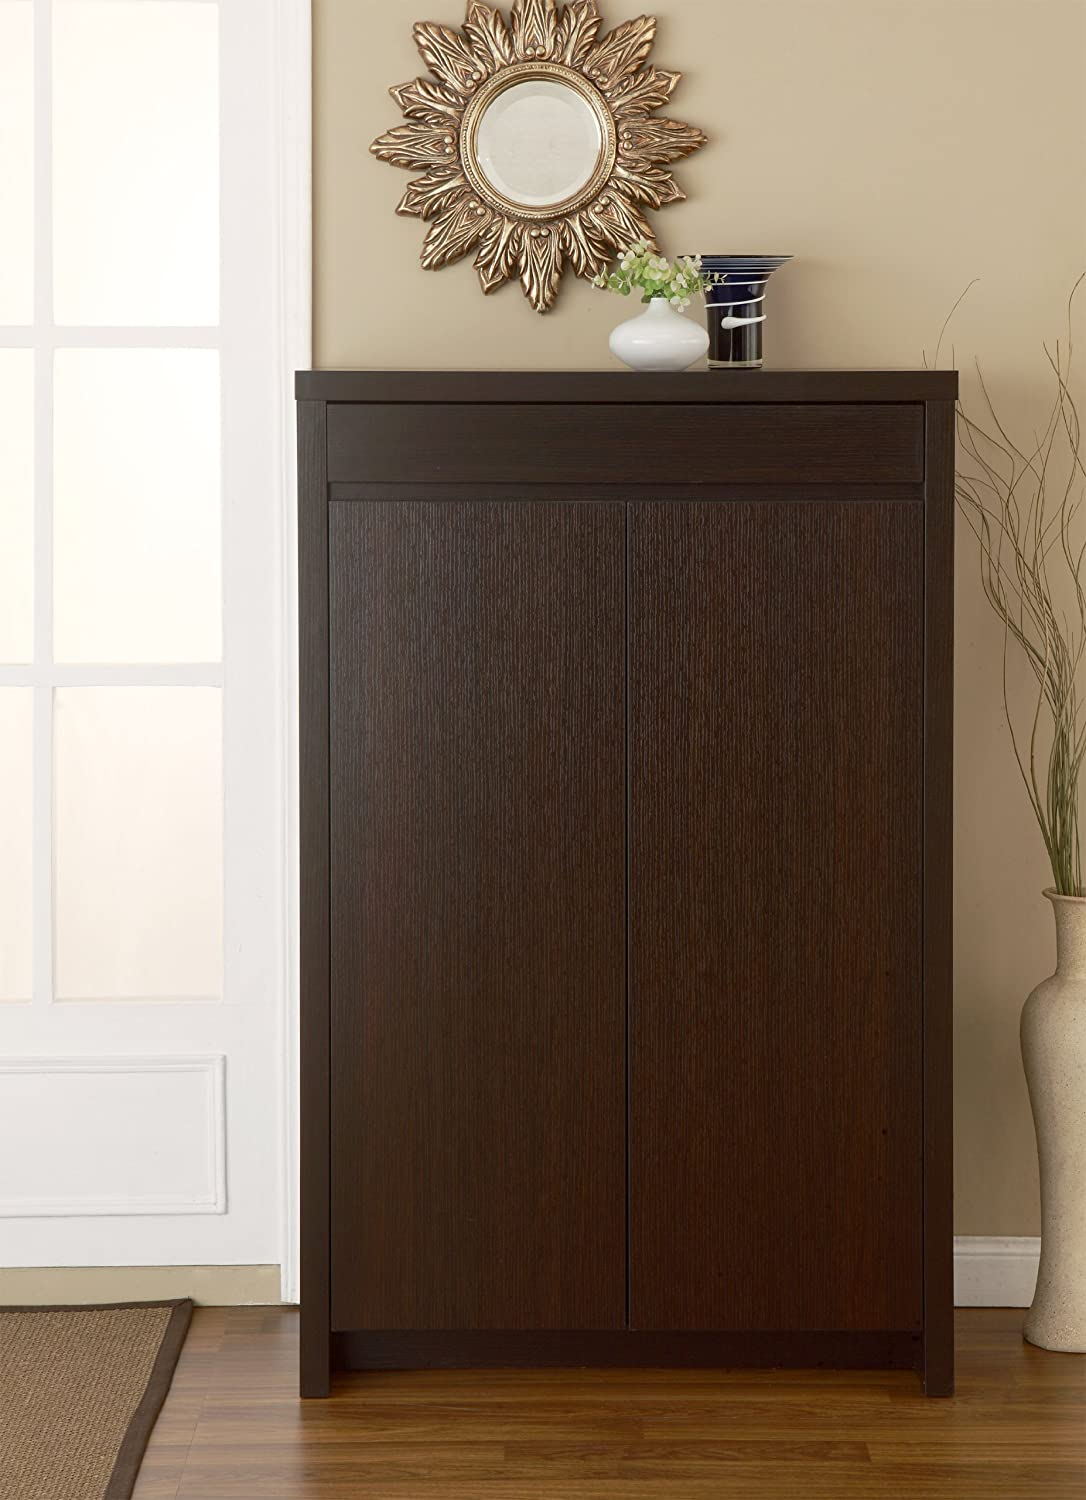 Elegant Amazon.com: IoHOMES Zoe 5 Shelf Shoe Cabinet With Drawer, Cappuccino:  Kitchen U0026 Dining Pictures Gallery